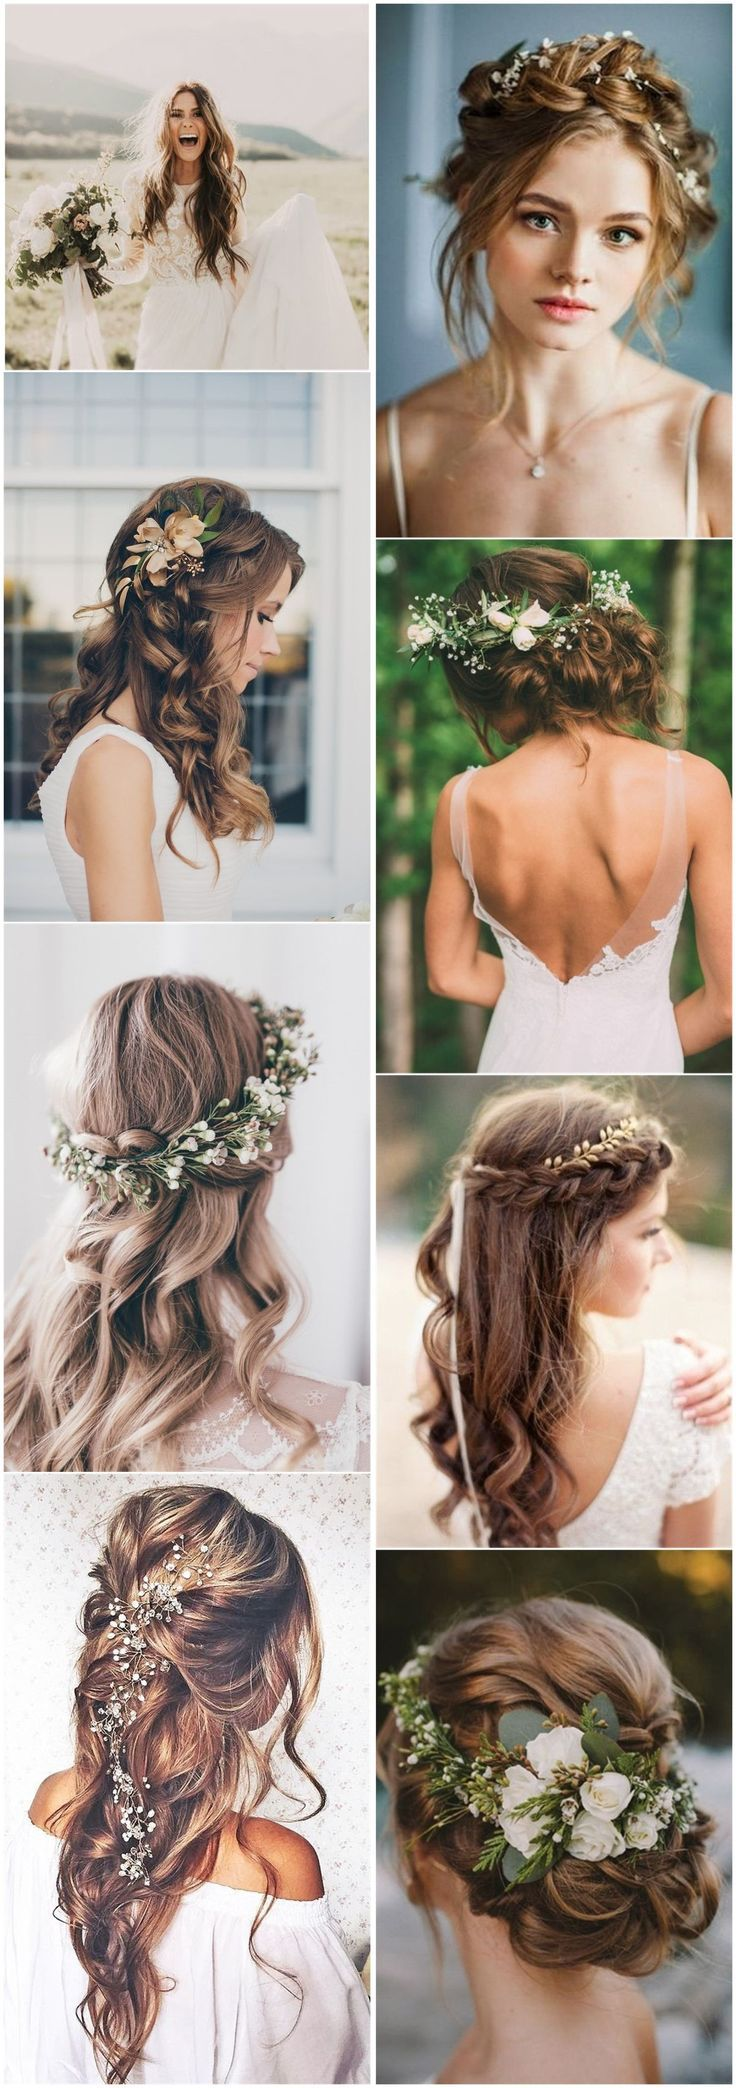 21 Inspiring Boho Bridal Hairstyles Ideas to Steal – #Boho #Bridal #Hairstyles #…